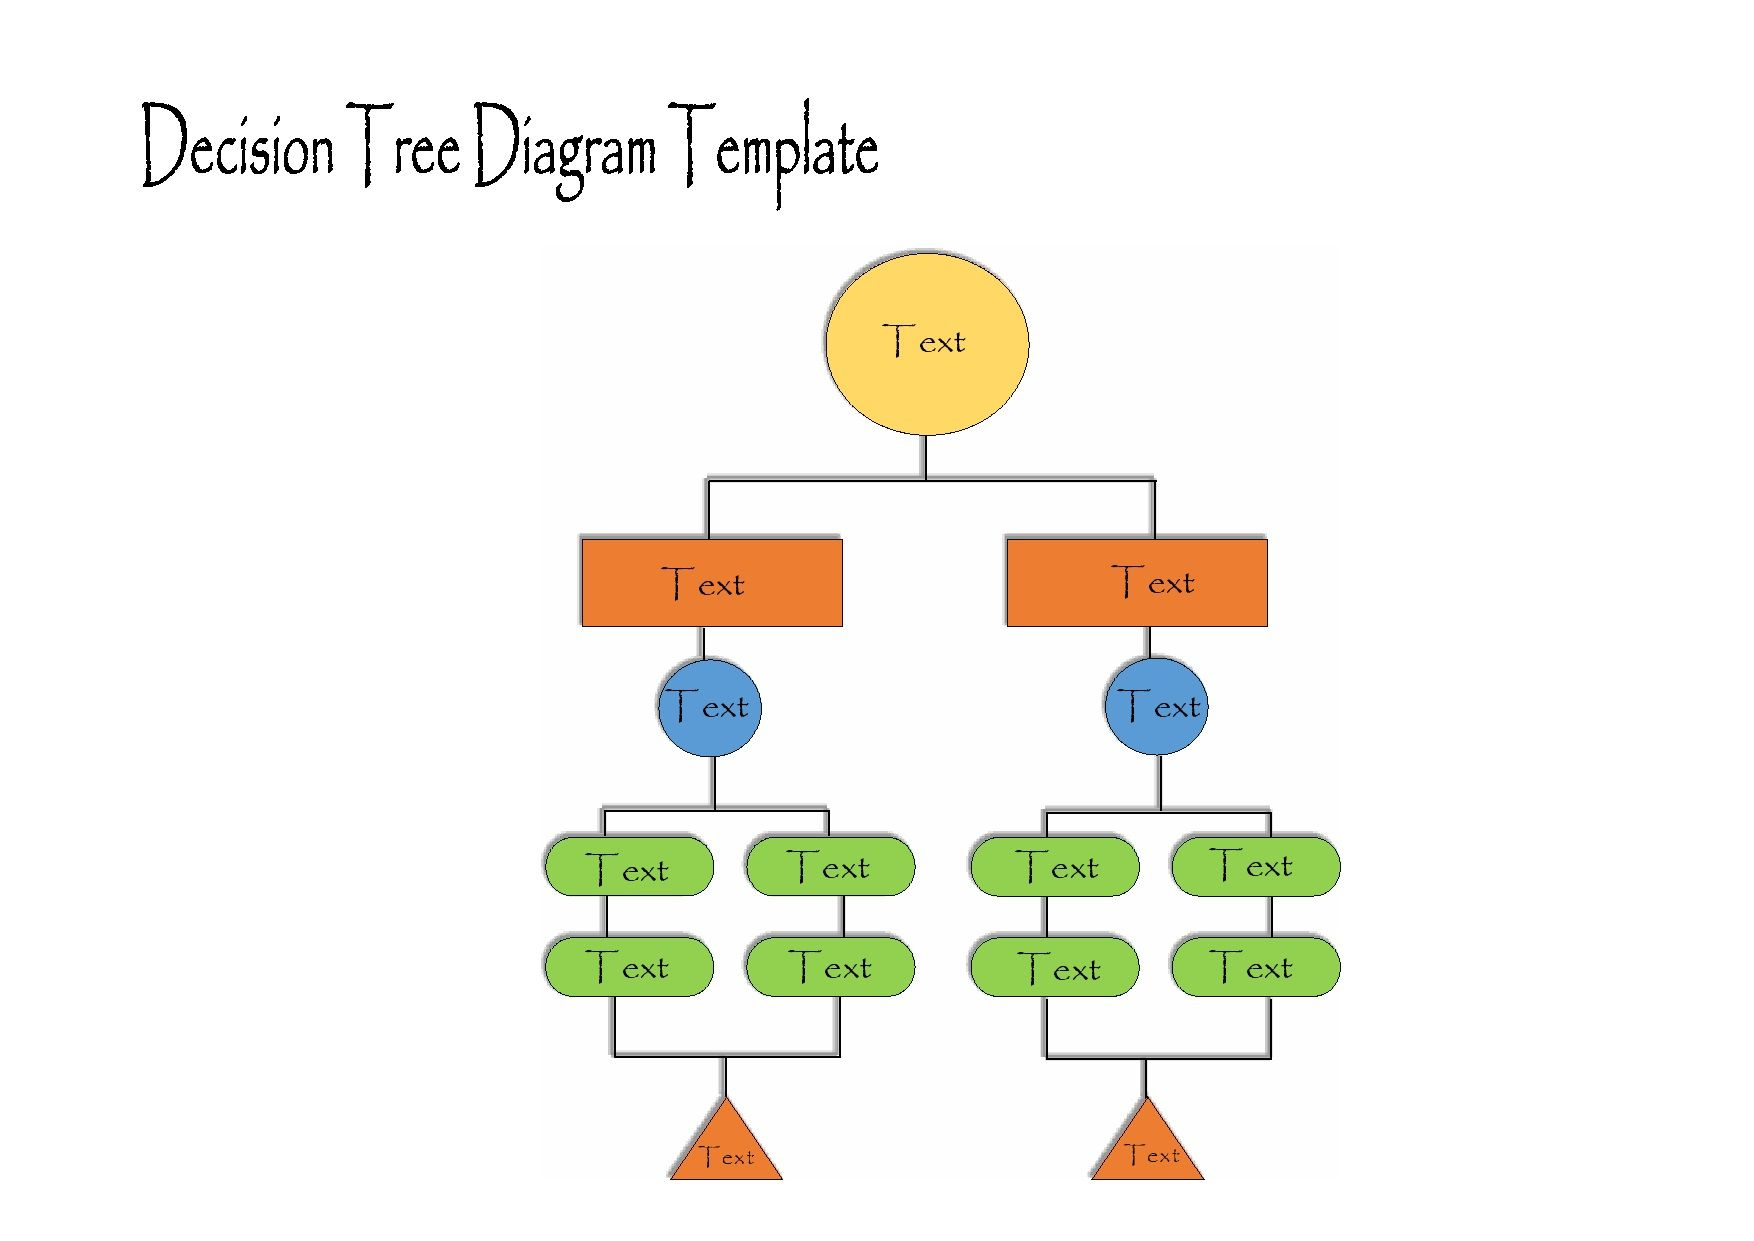 005 Remarkable Decision Tree Diagram Template Excel High Def  ChartFull